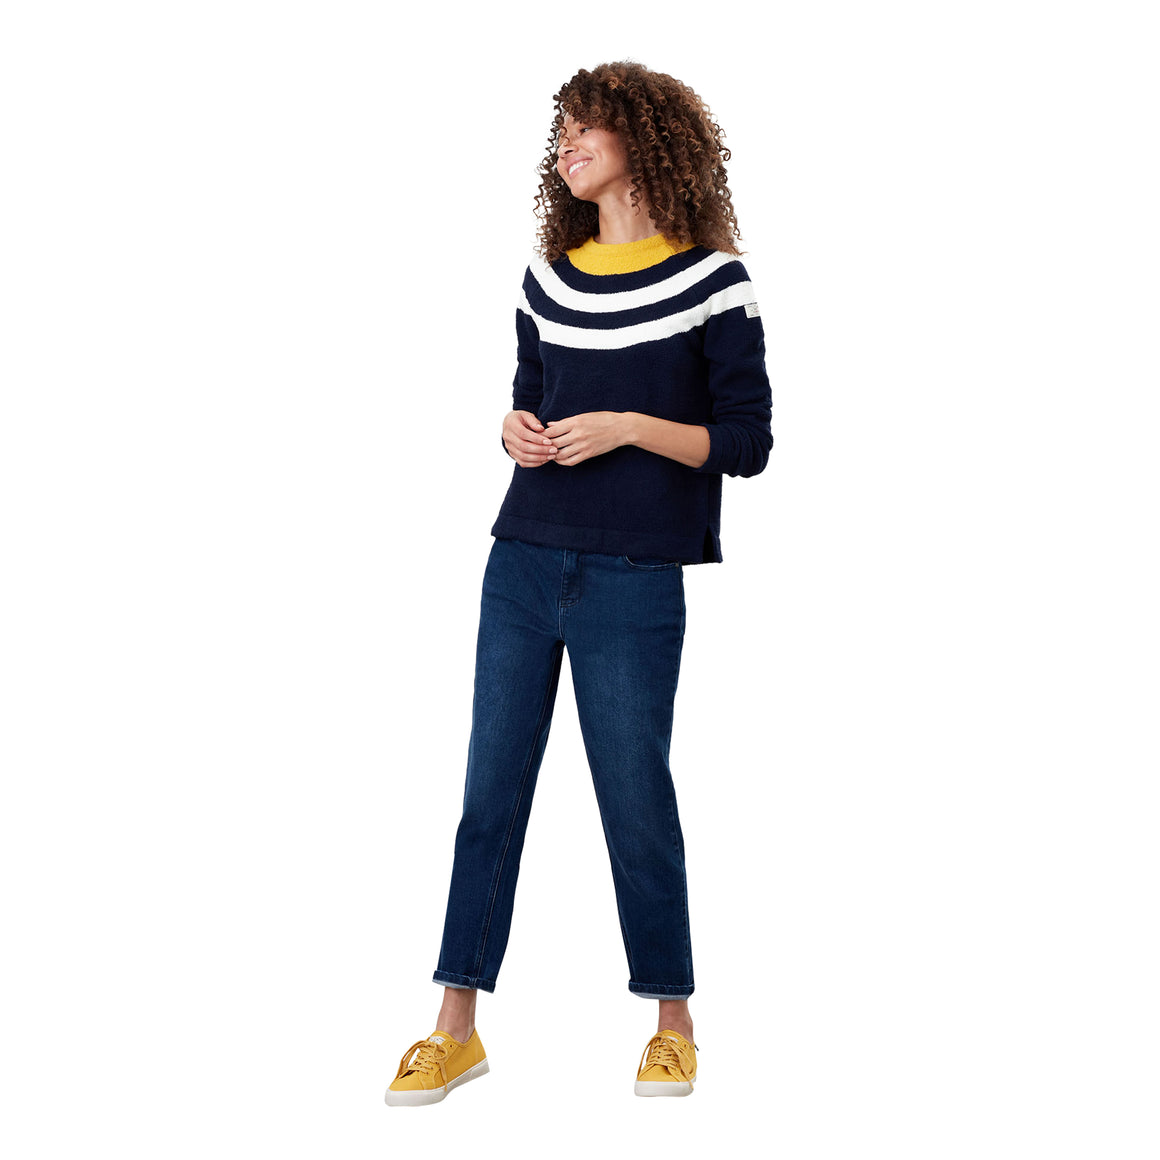 Seaport Roll Neck Jumper for Women in Navy